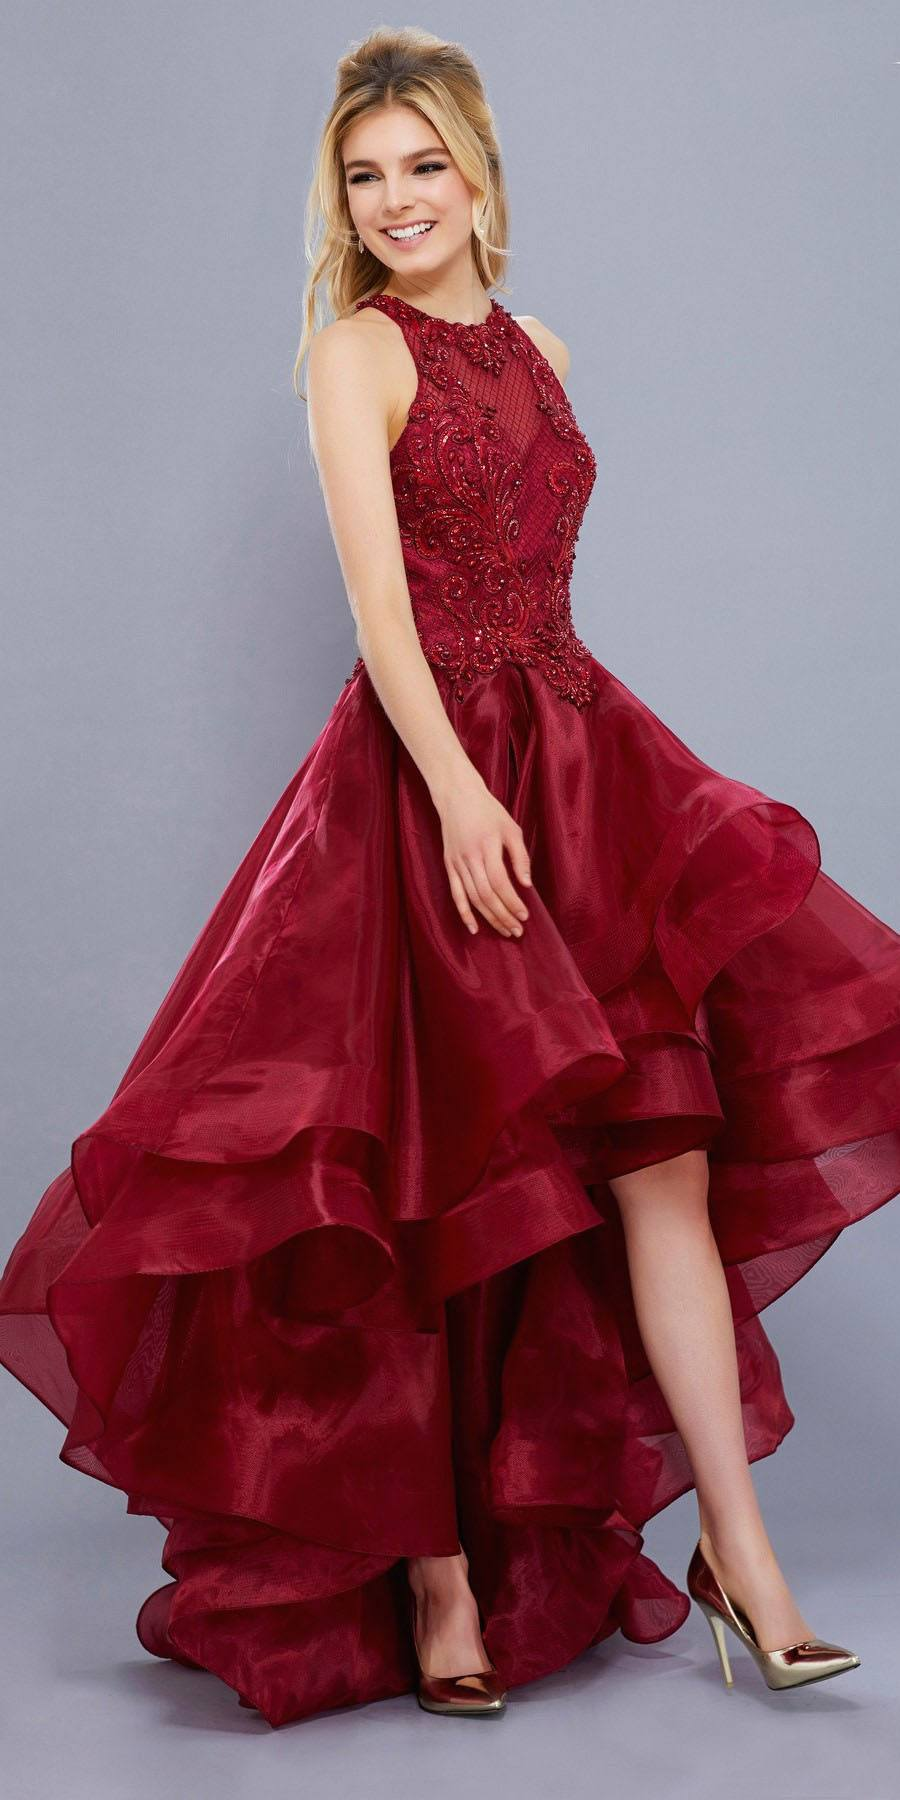 Red High-Low Prom Dress with Bead Applique Bodice and ...Red High Low Prom Dresses 2013